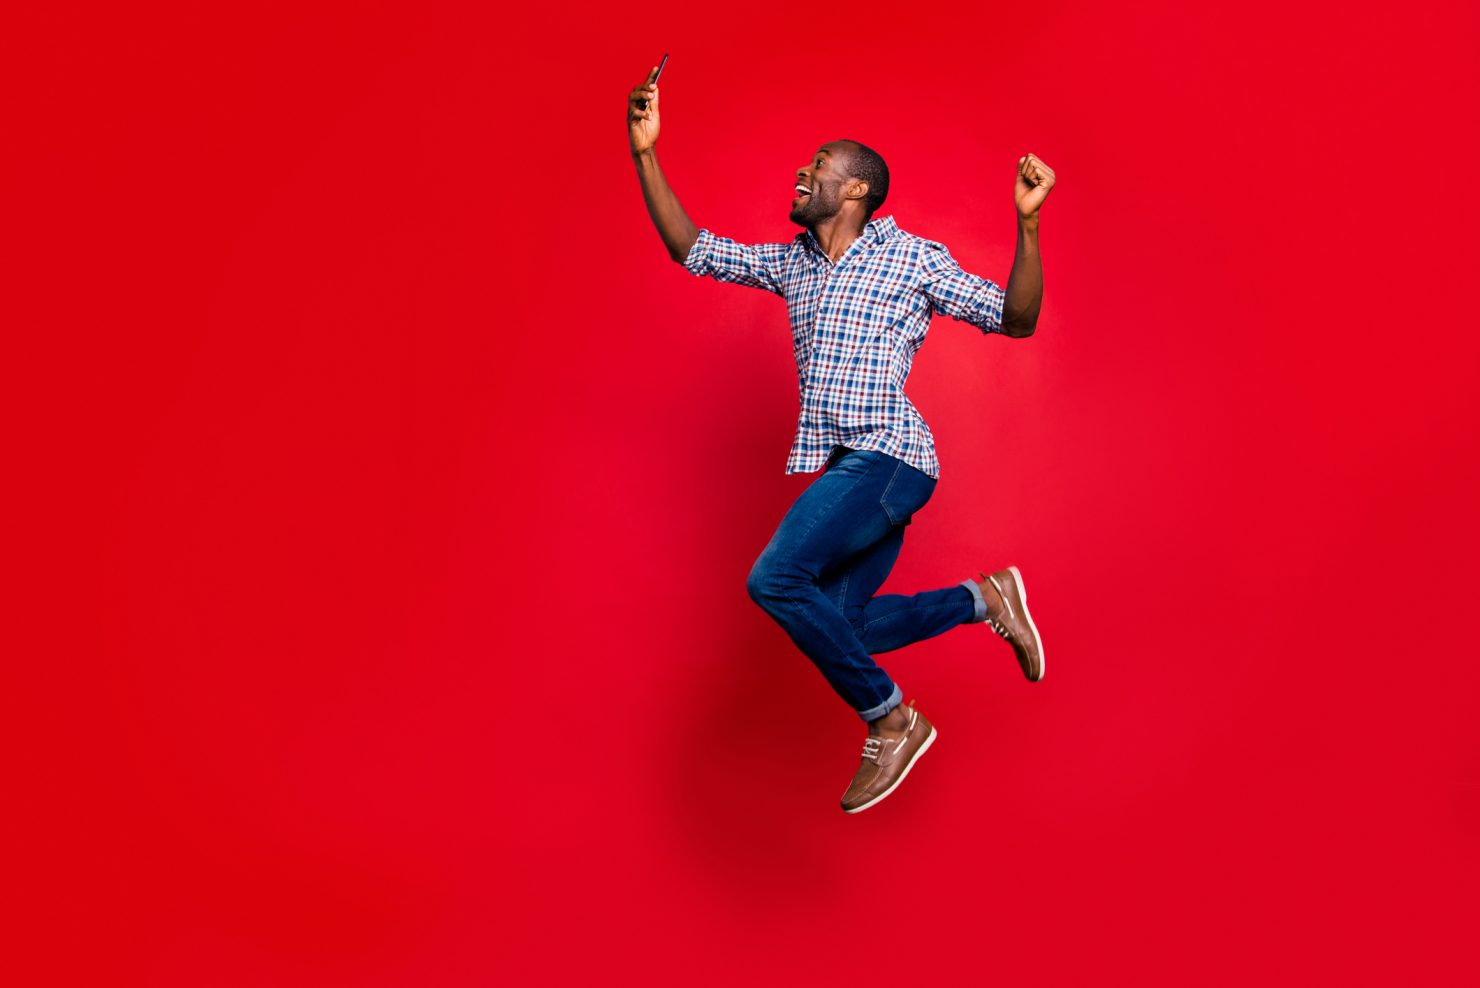 Photo of a young man of African descent jumping in the air while holding and looking at a cell phone. He is smiling and visibly happy. The backdrop is red.